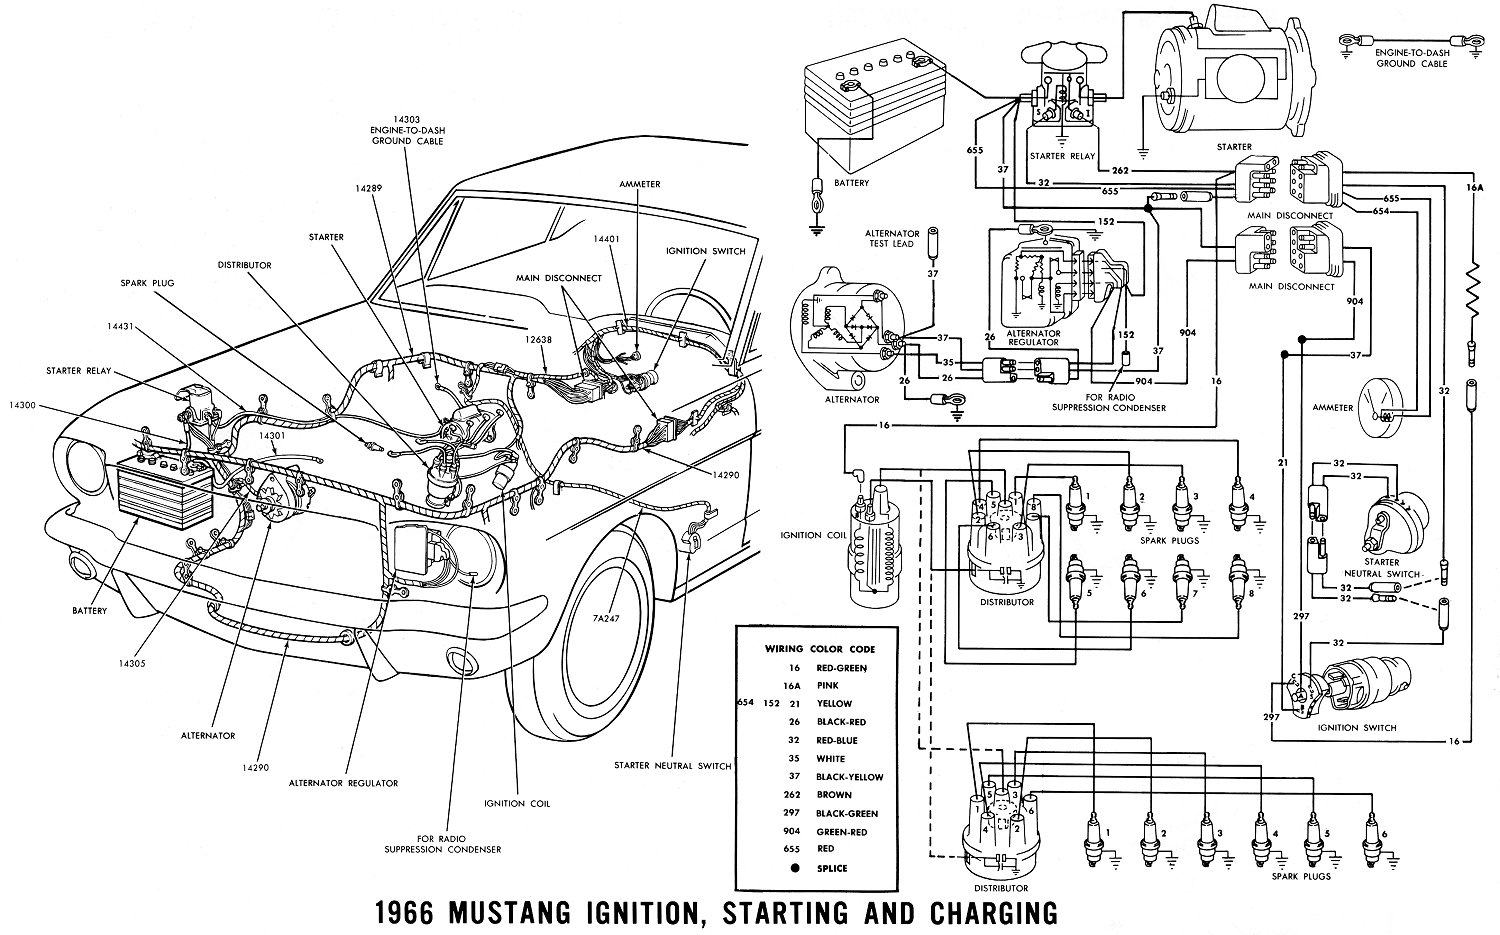 Another Led Taillight Question on 1970 mustang mach 1 wiring diagram